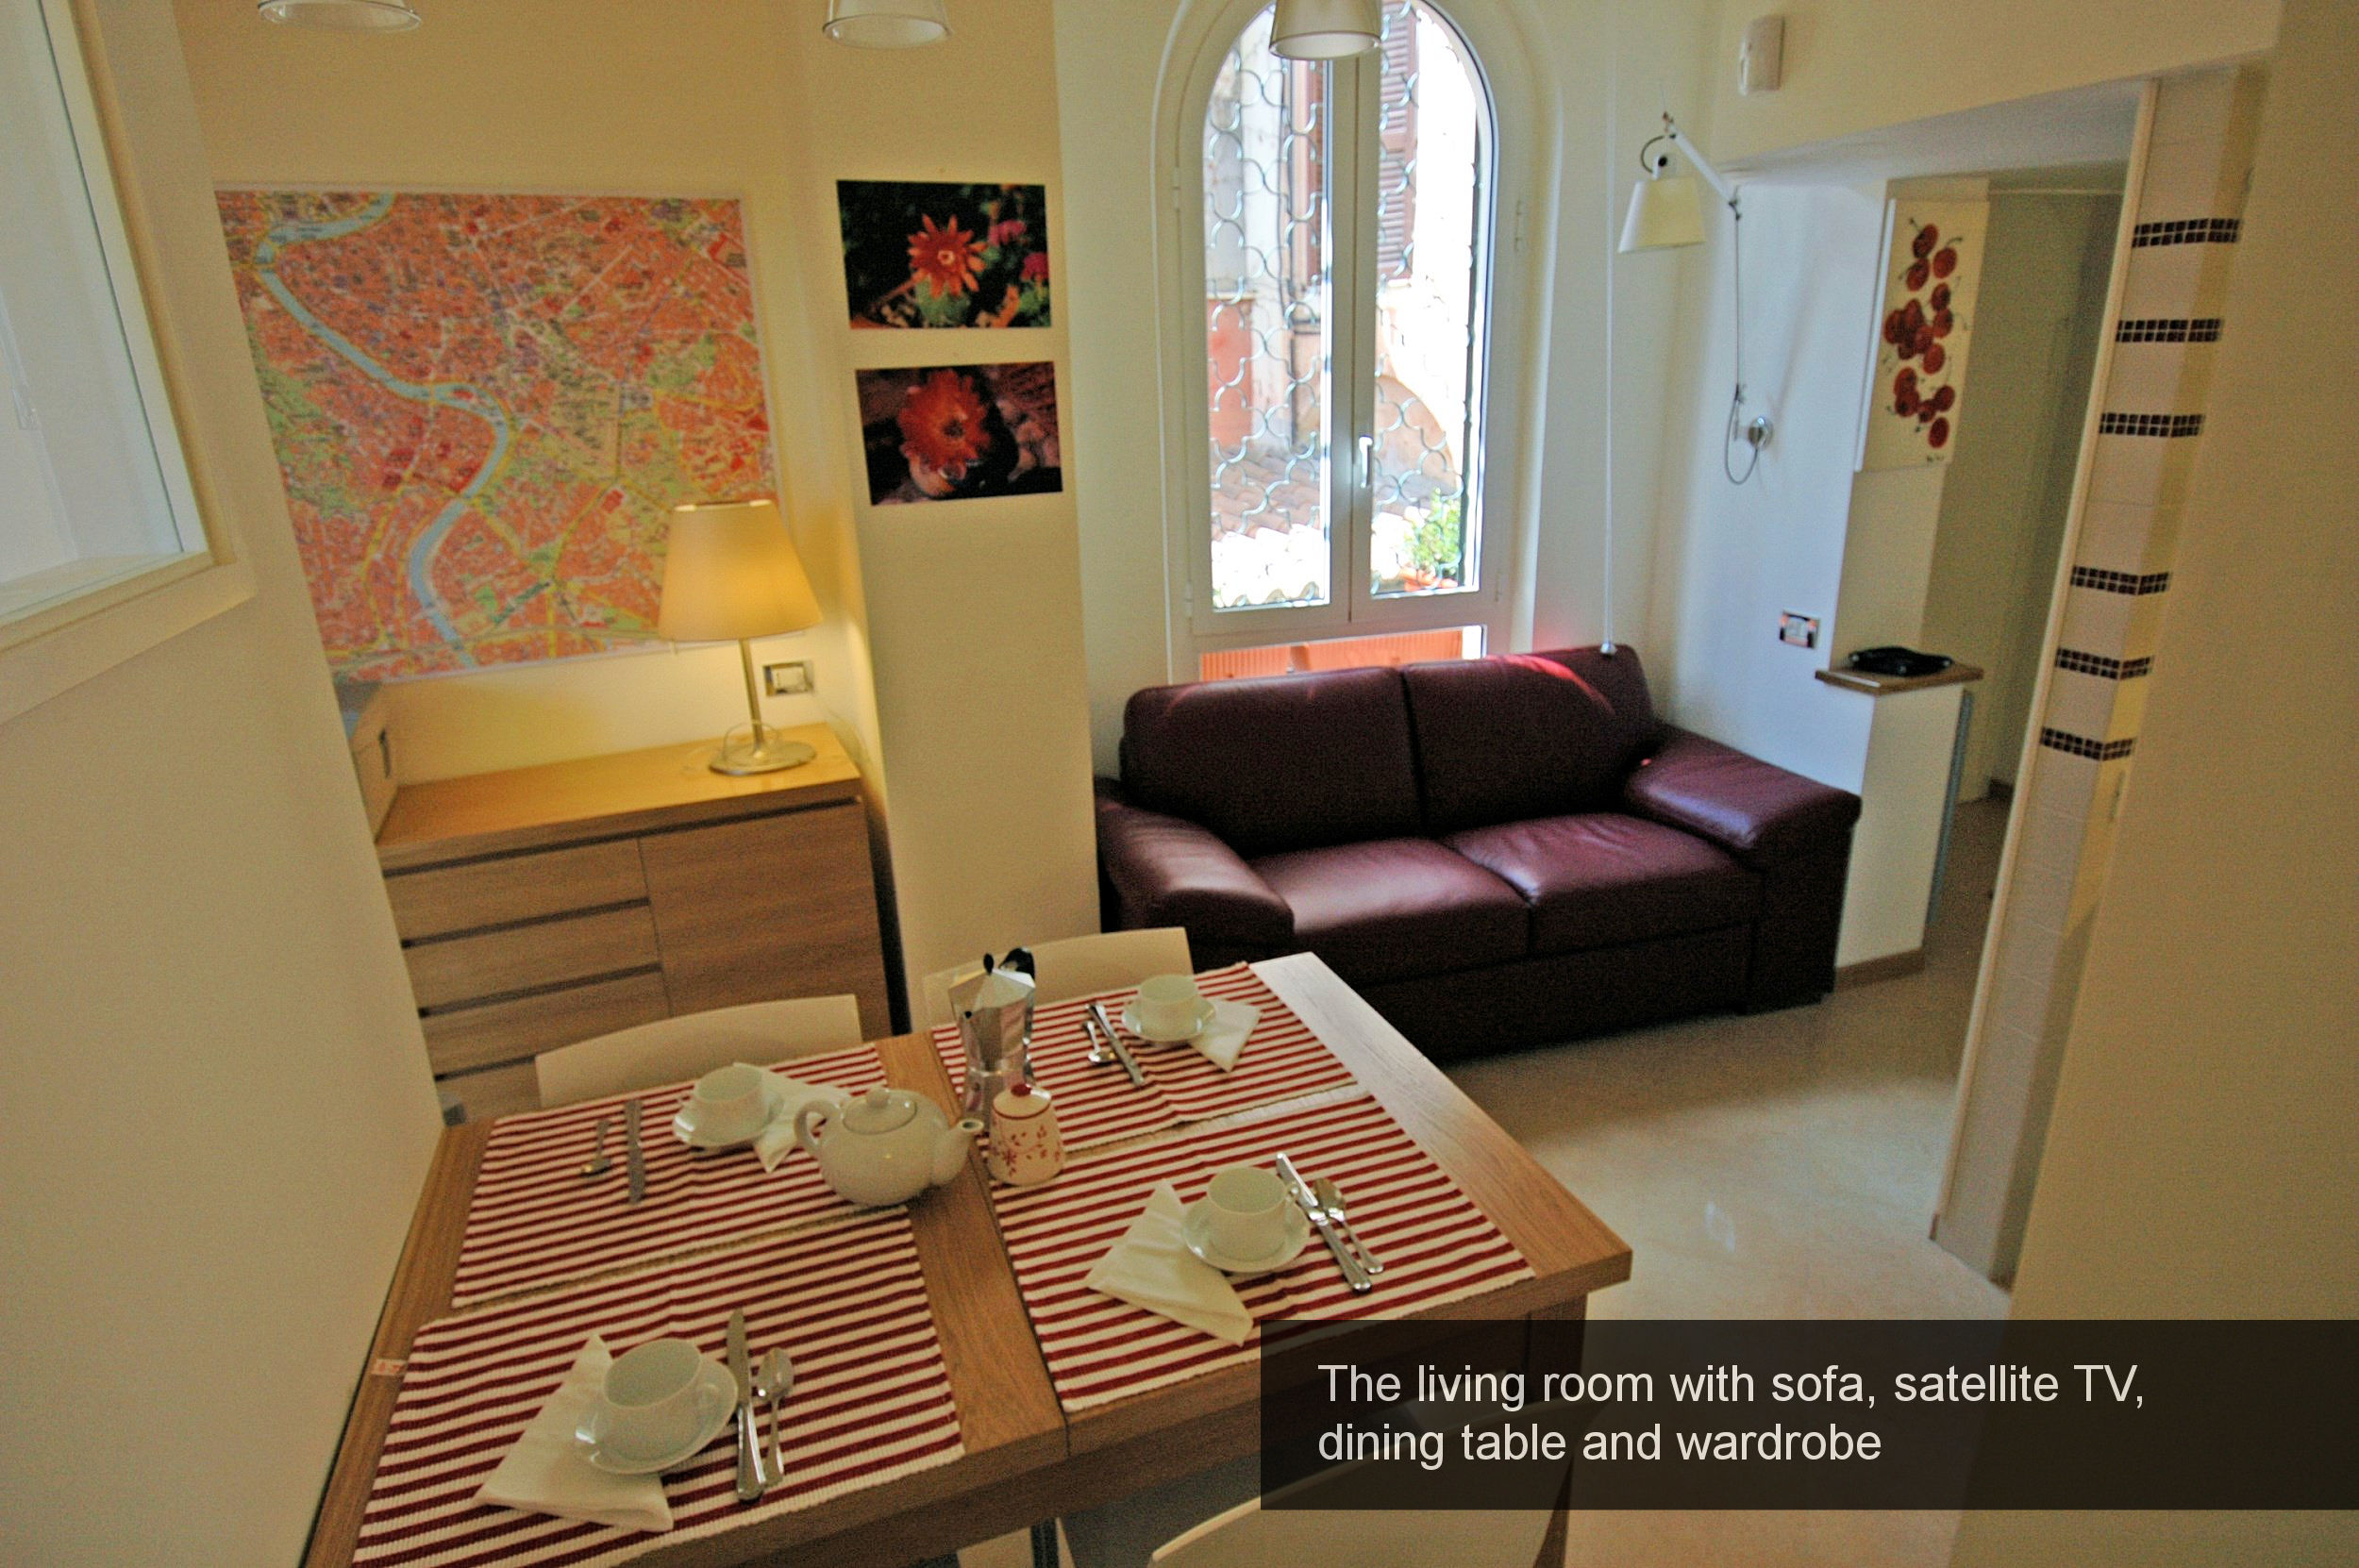 7) living room with sofa, satellite TV, dining table and wardrobe